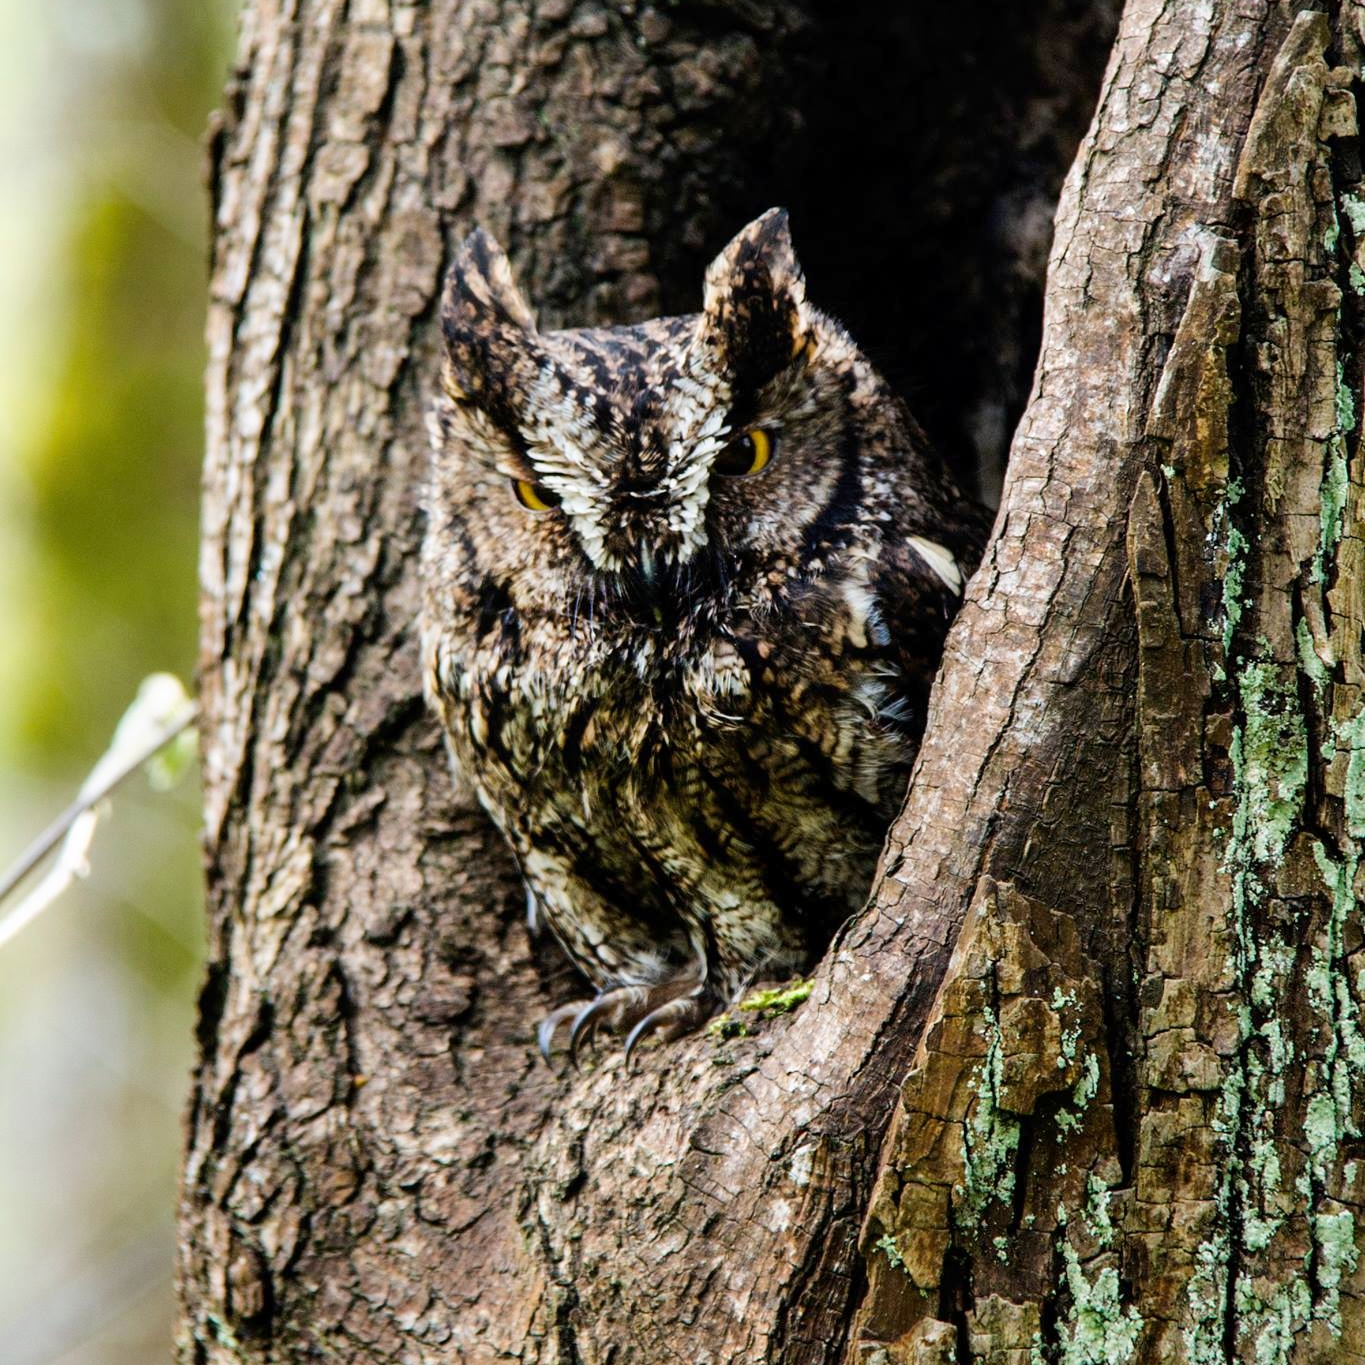 A cute little screech owl I met on the Powerline Trail